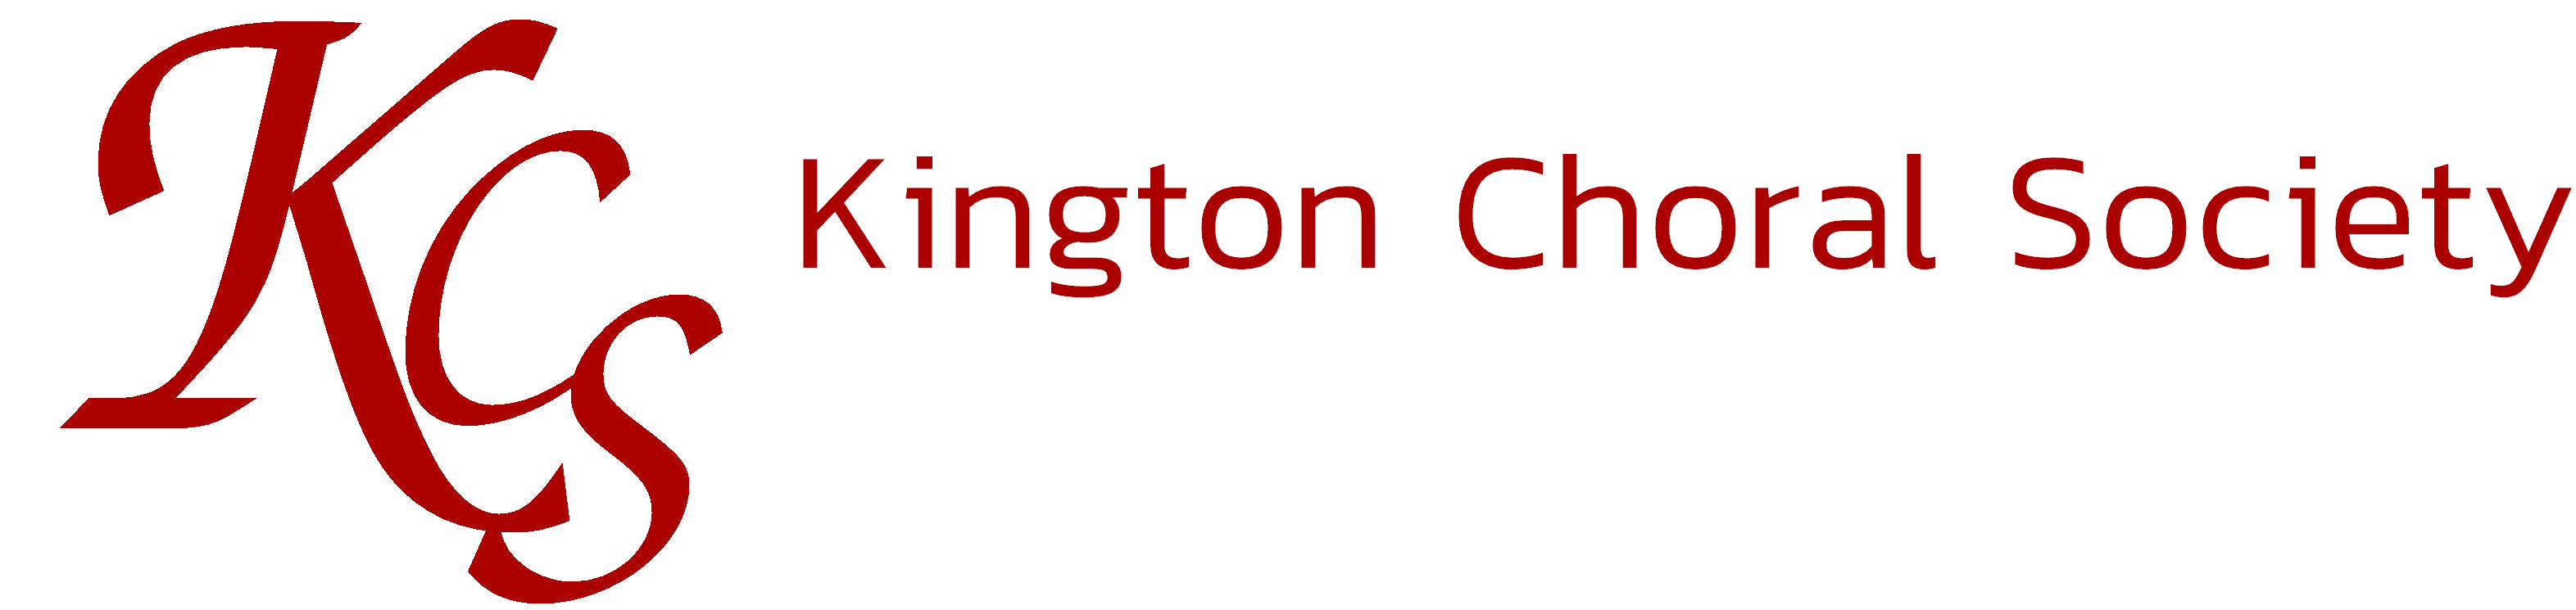 Kington Choral Society